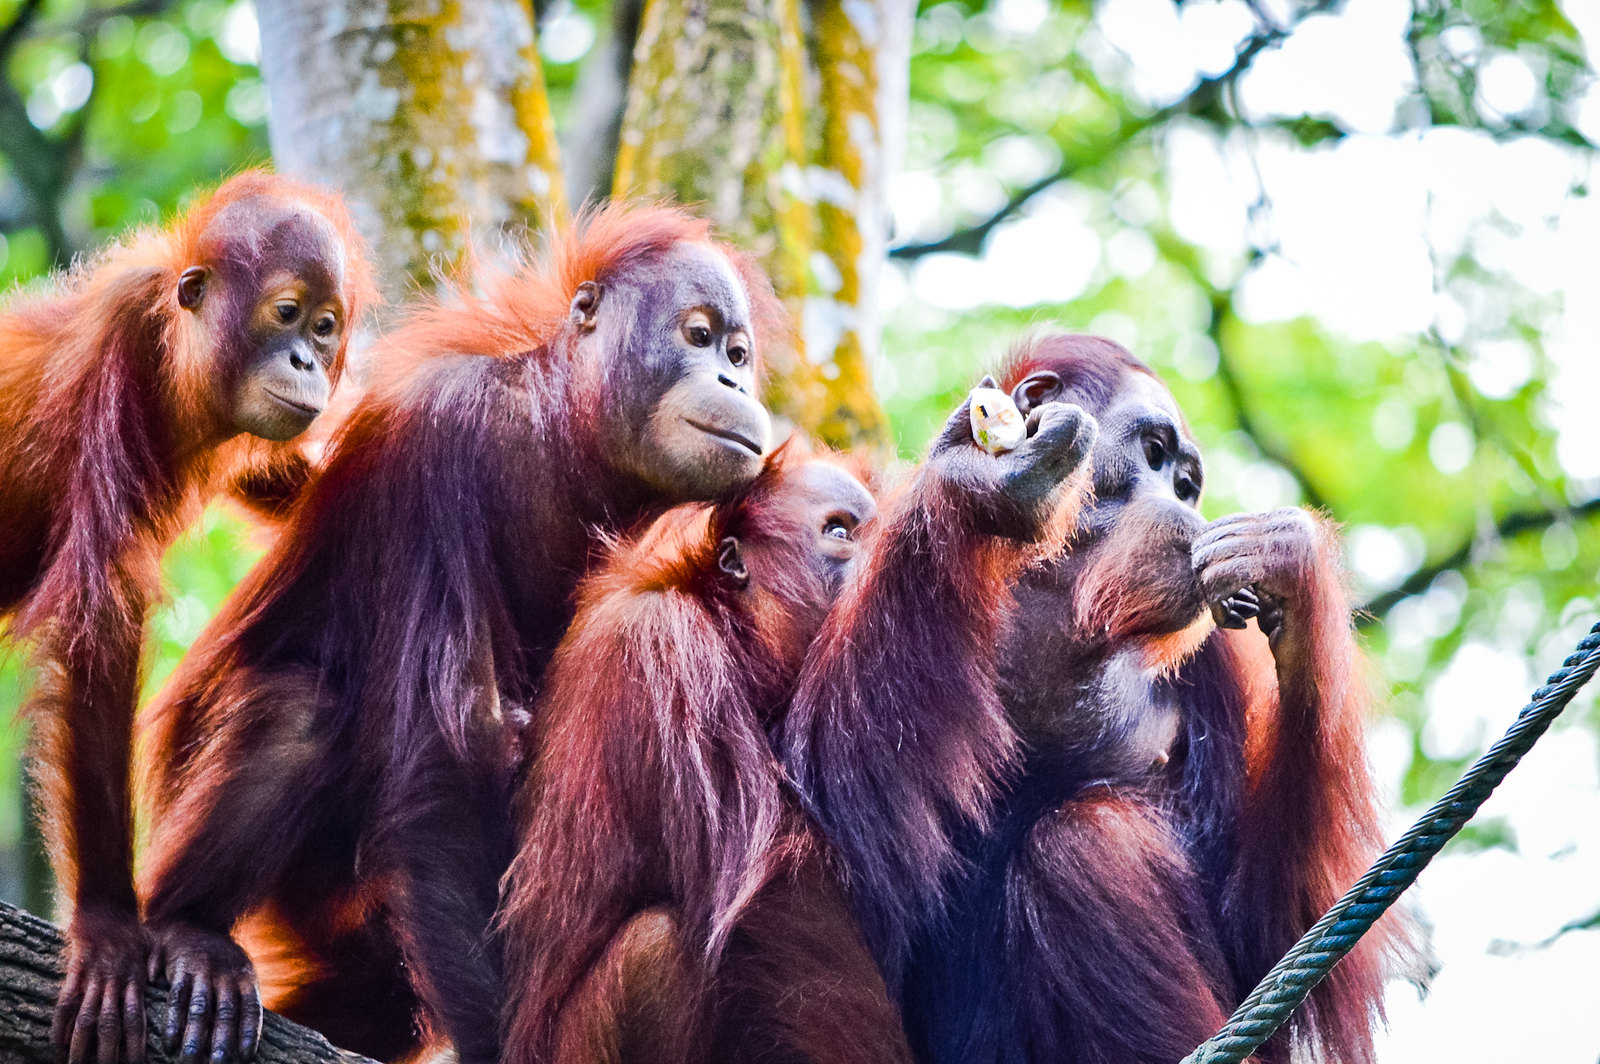 The Singapore Zoo 2015 – Oh, Those Cheeky Orangutans!